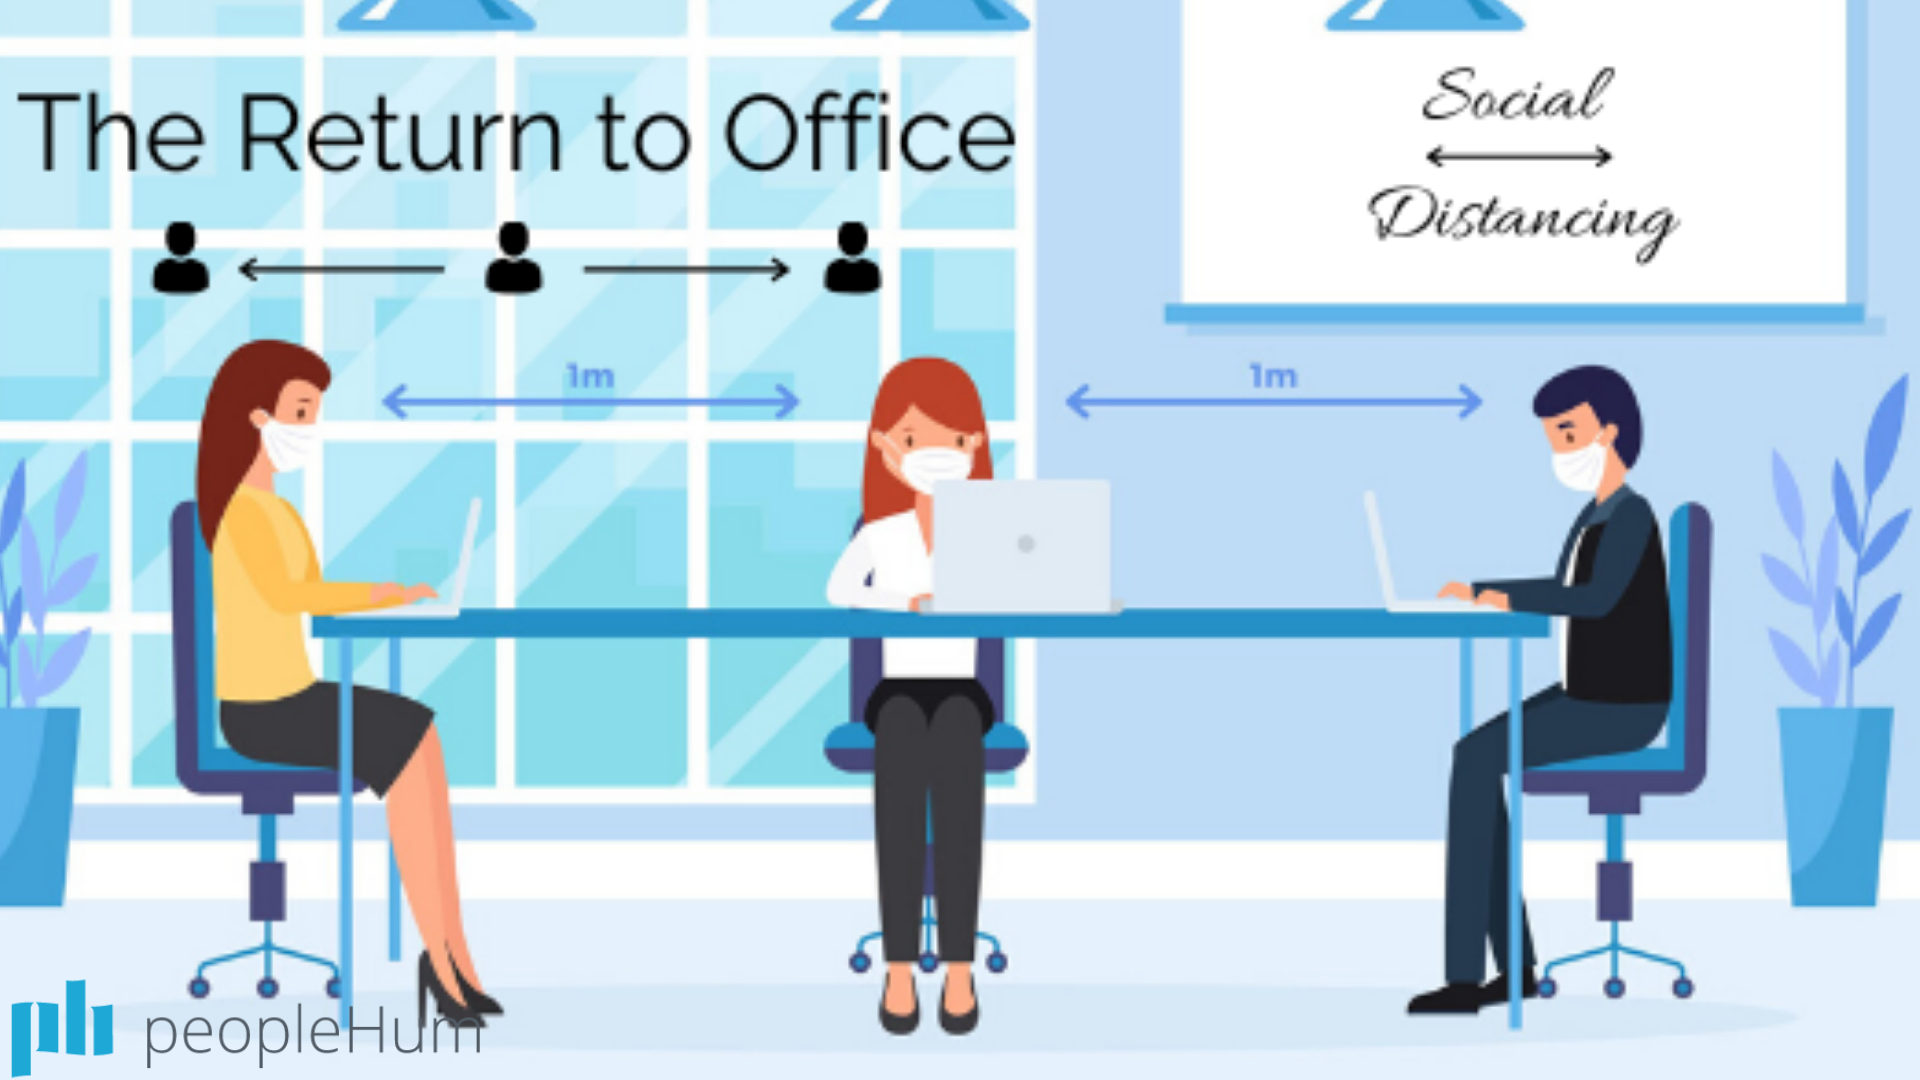 Considerations for the return to office